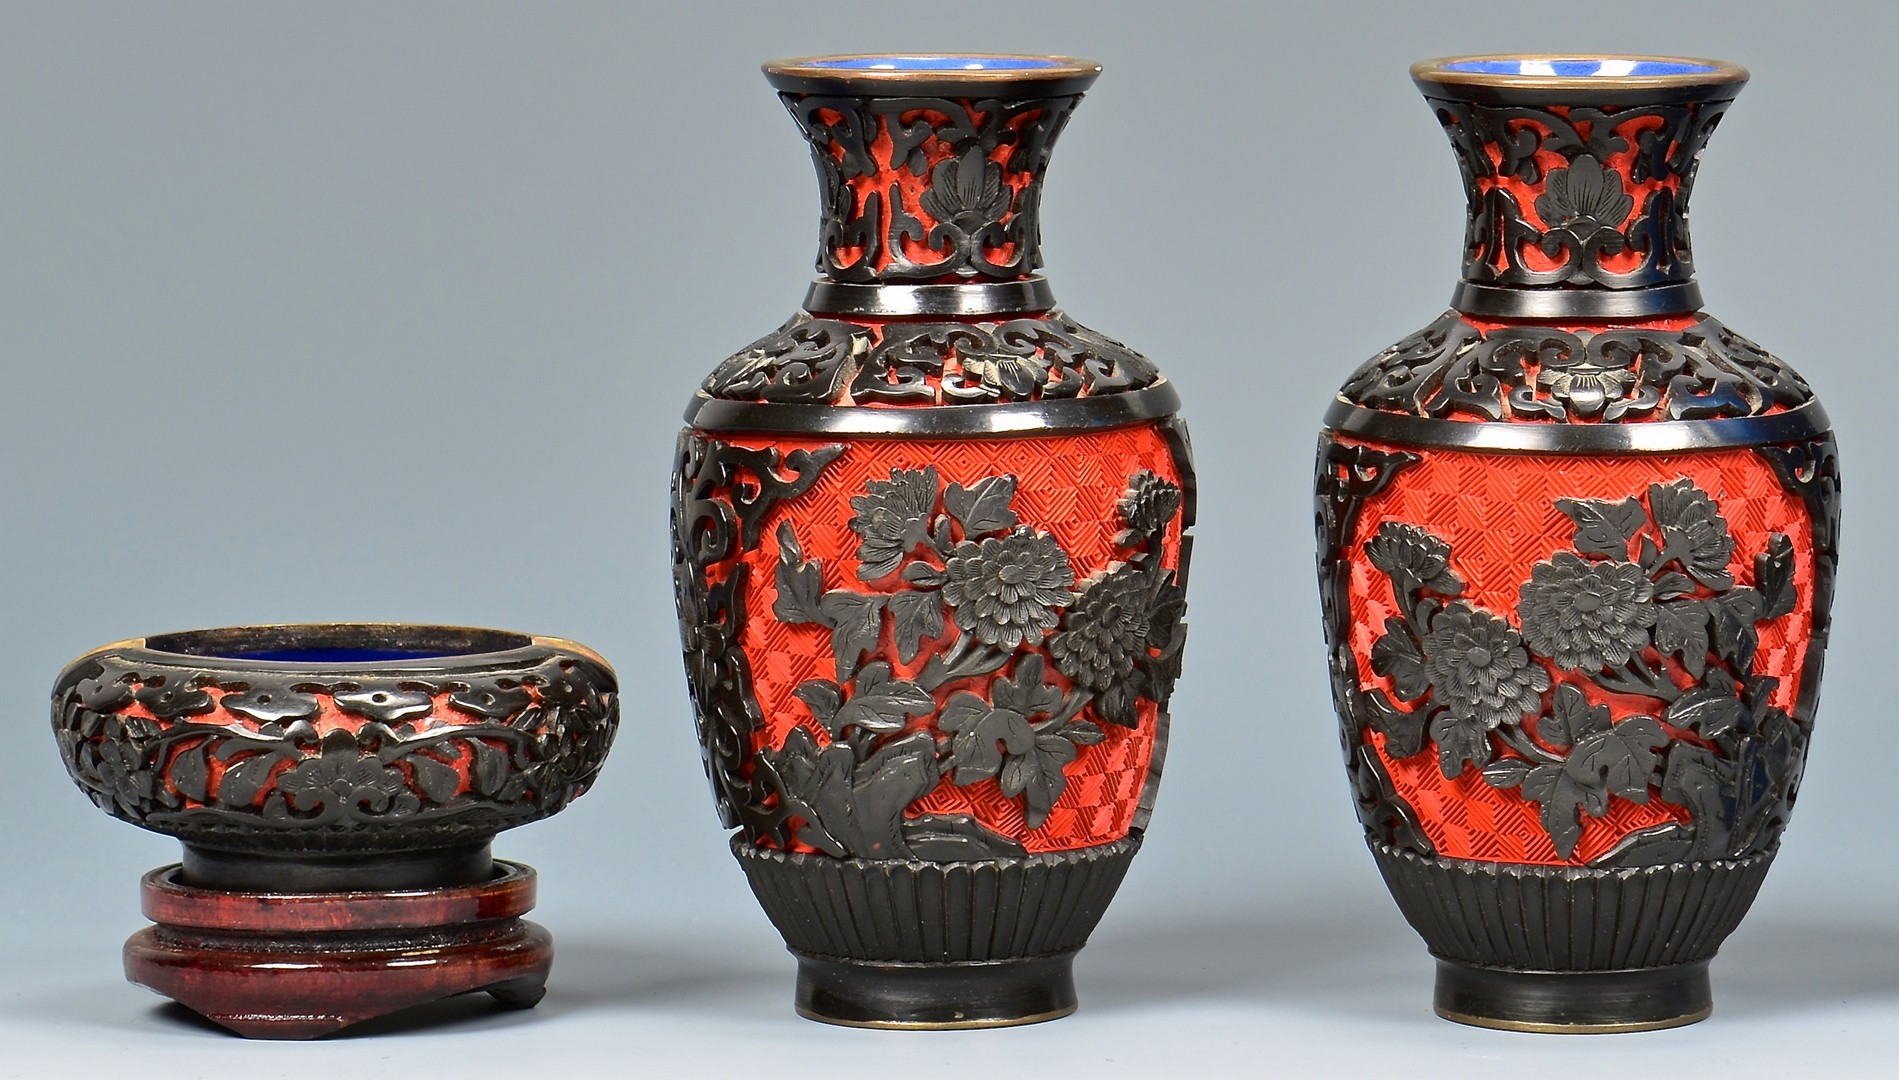 Lot 766: Group of Asian Decorative Items